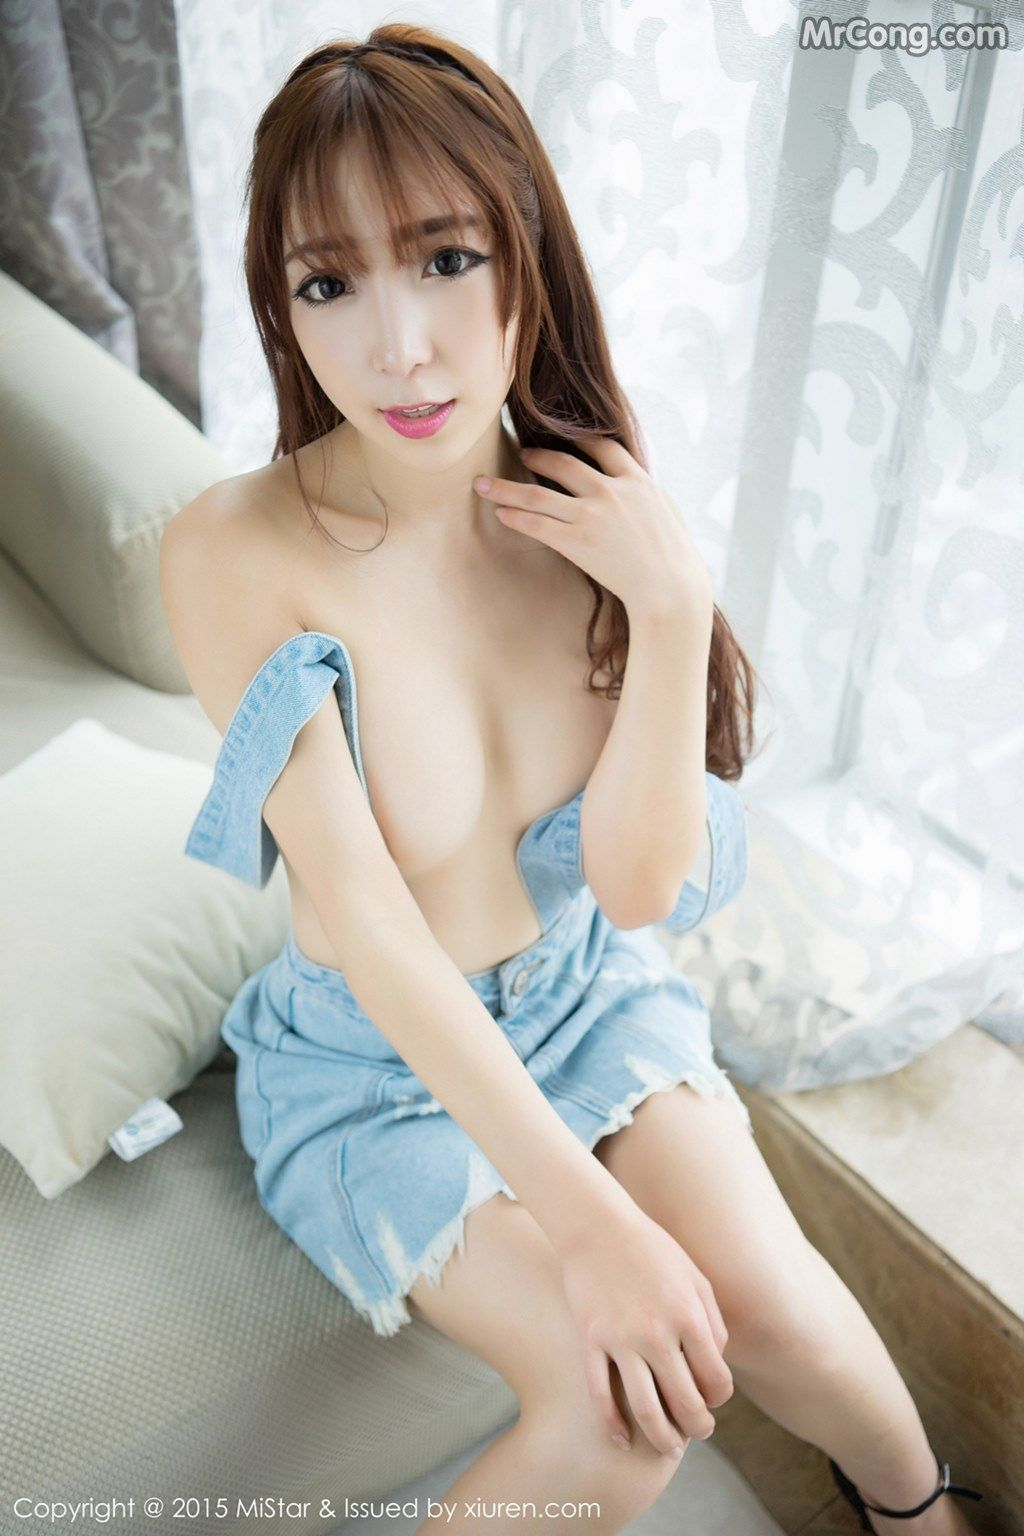 Anh sexy love